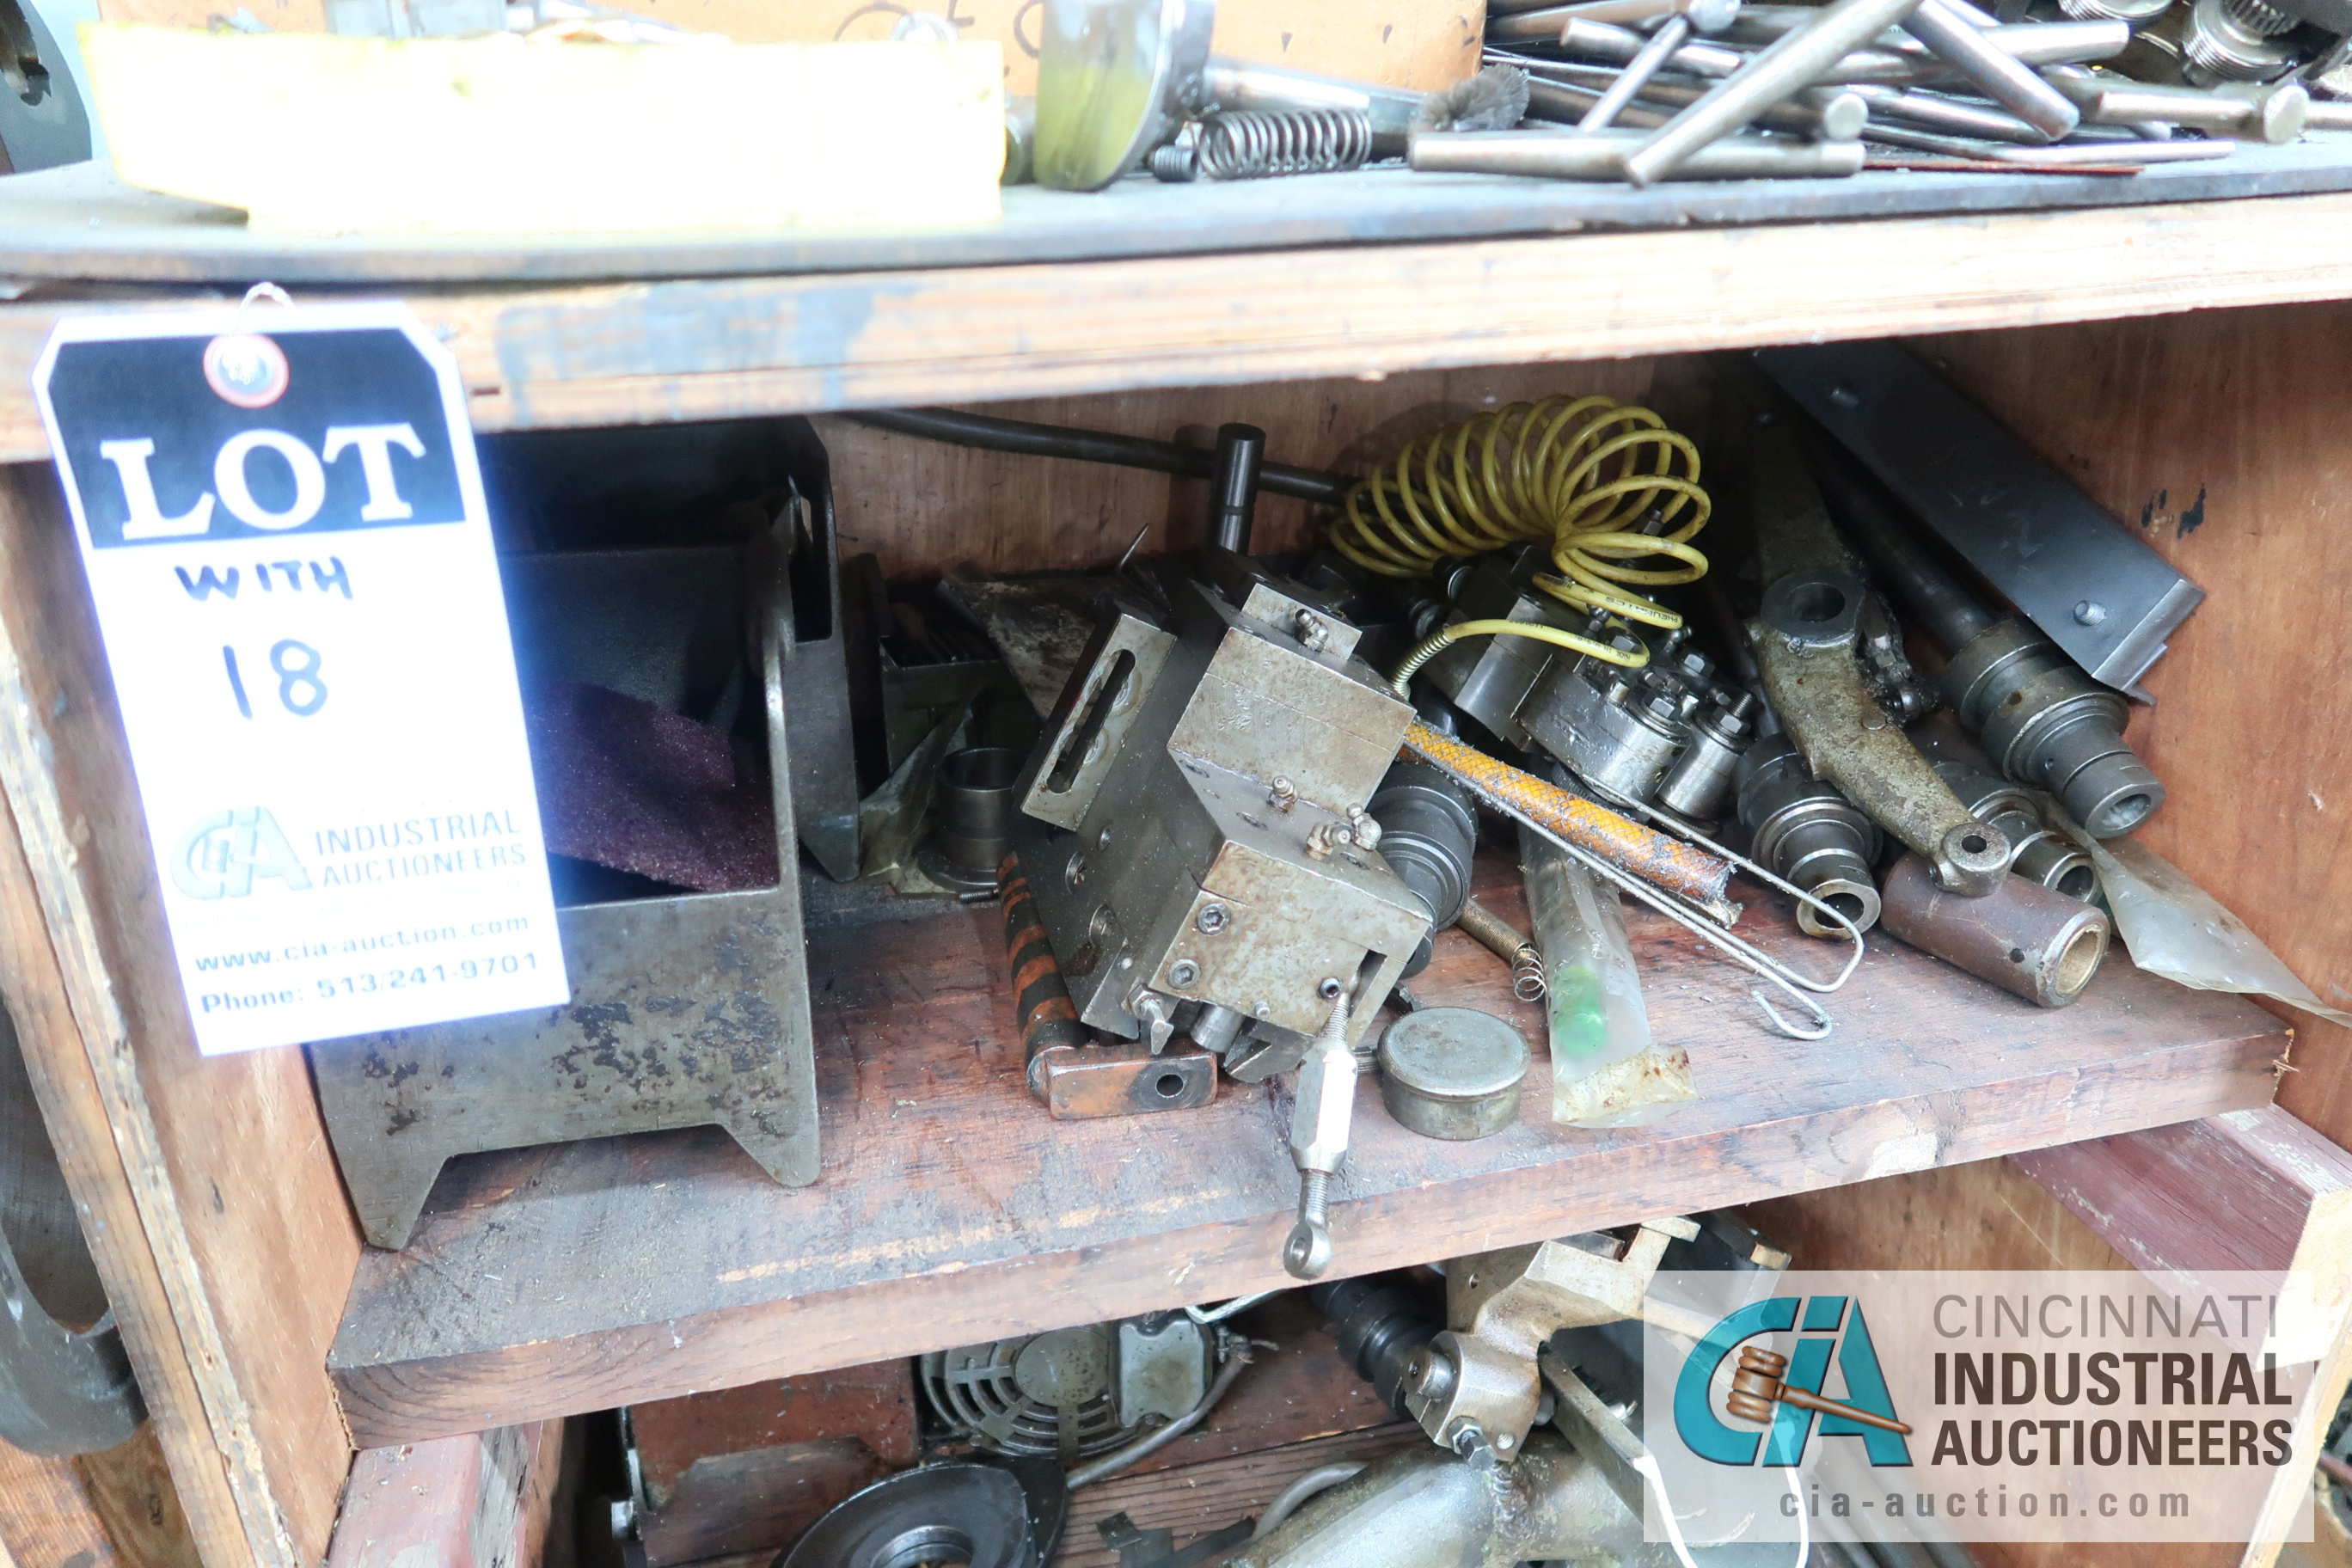 (LOT) LARGE ASSORTMENT MISCELLANEOUS DAVENPORT TOOLING, ATTACHMENTS, GEARS, CAMS AND OTHER RELATED - Image 9 of 21